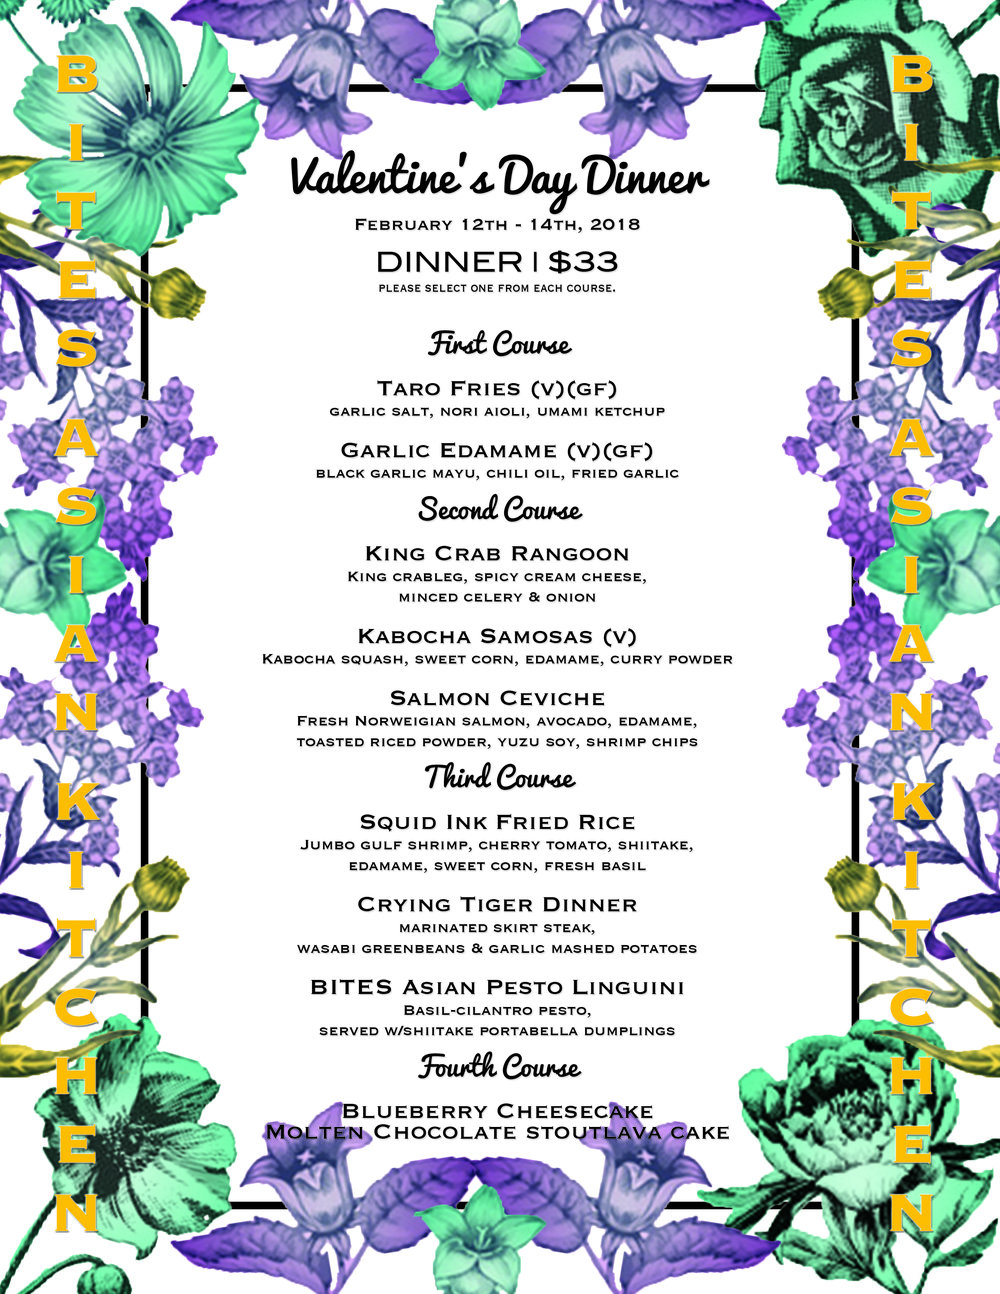 Happy Valentines Day!! Bites Asian Kitchen unveils a perfect ensemble of dishes to choose from. $33 Prix Fixe dinner with 4 courses, curated by Chef Derek Intapura. Available February 12th-14th 4pm - 10pm. Bring your honey, bring your money! -